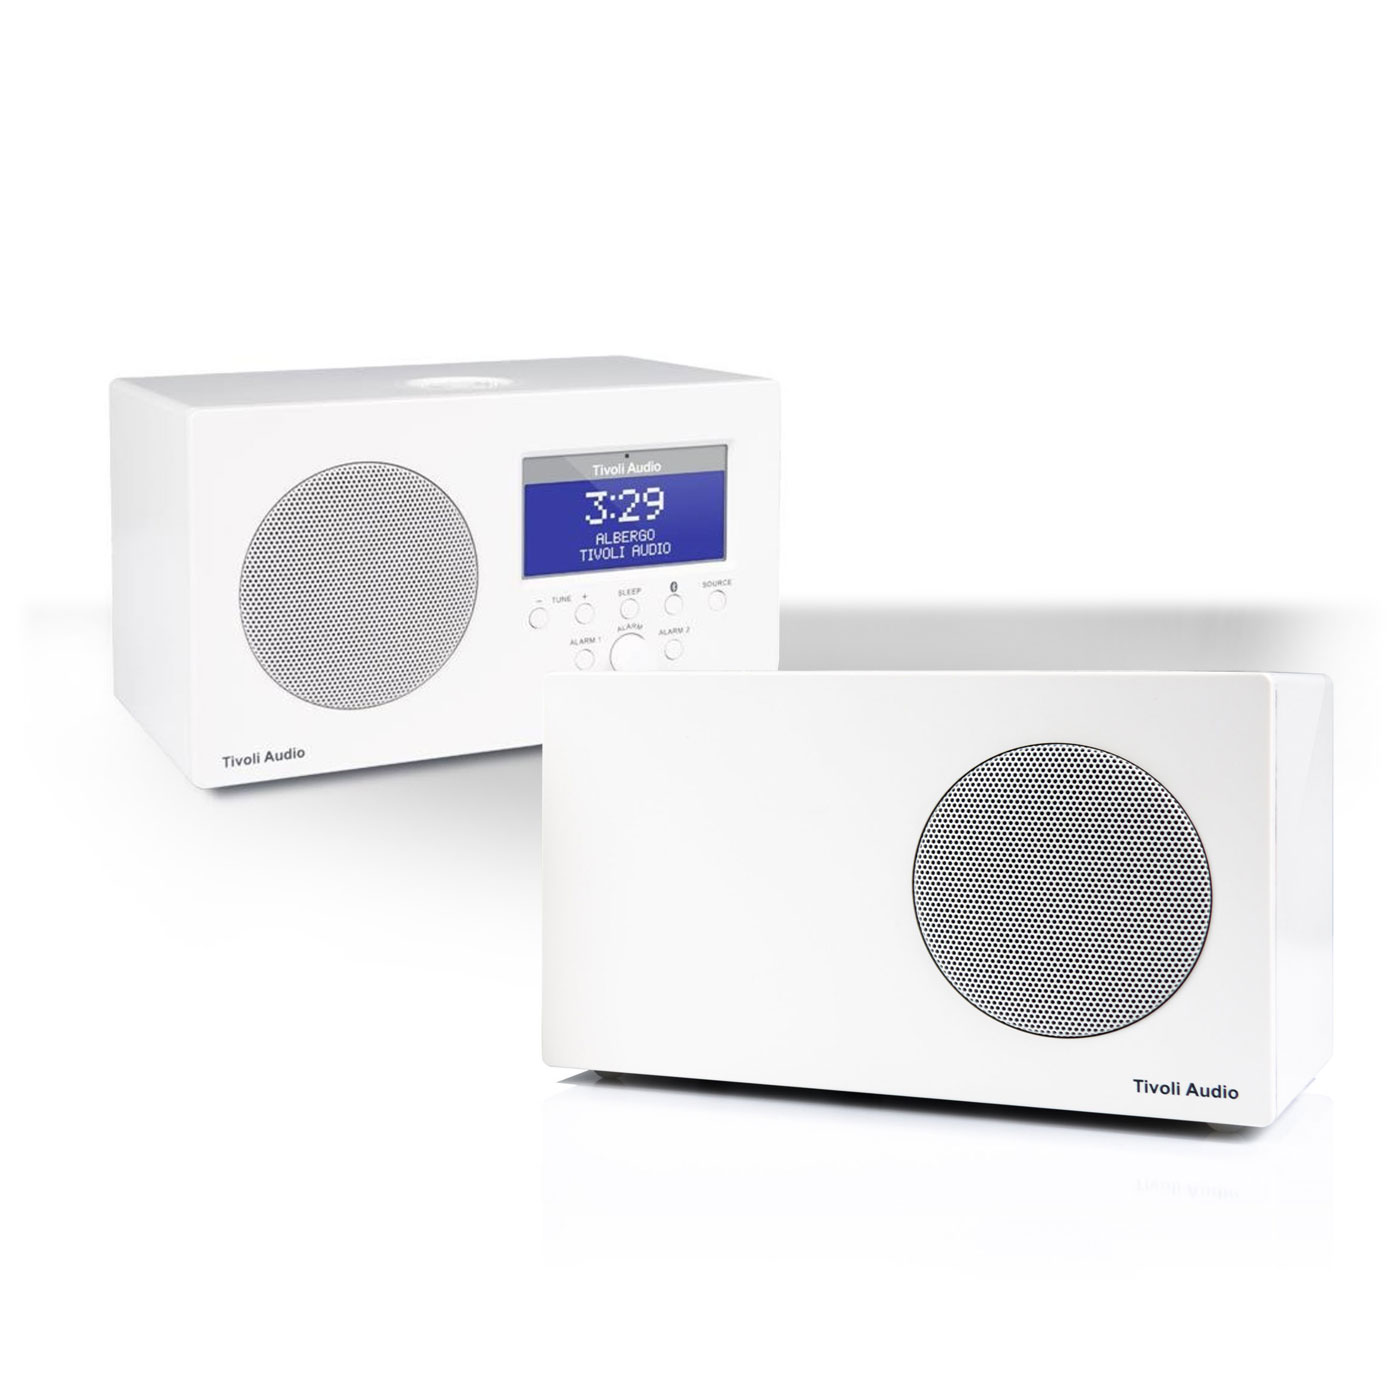 Tivoli Audio Albergo Bluetooth Clock Radio Package with Albergo Stereo Speaker by Tivoli Audio